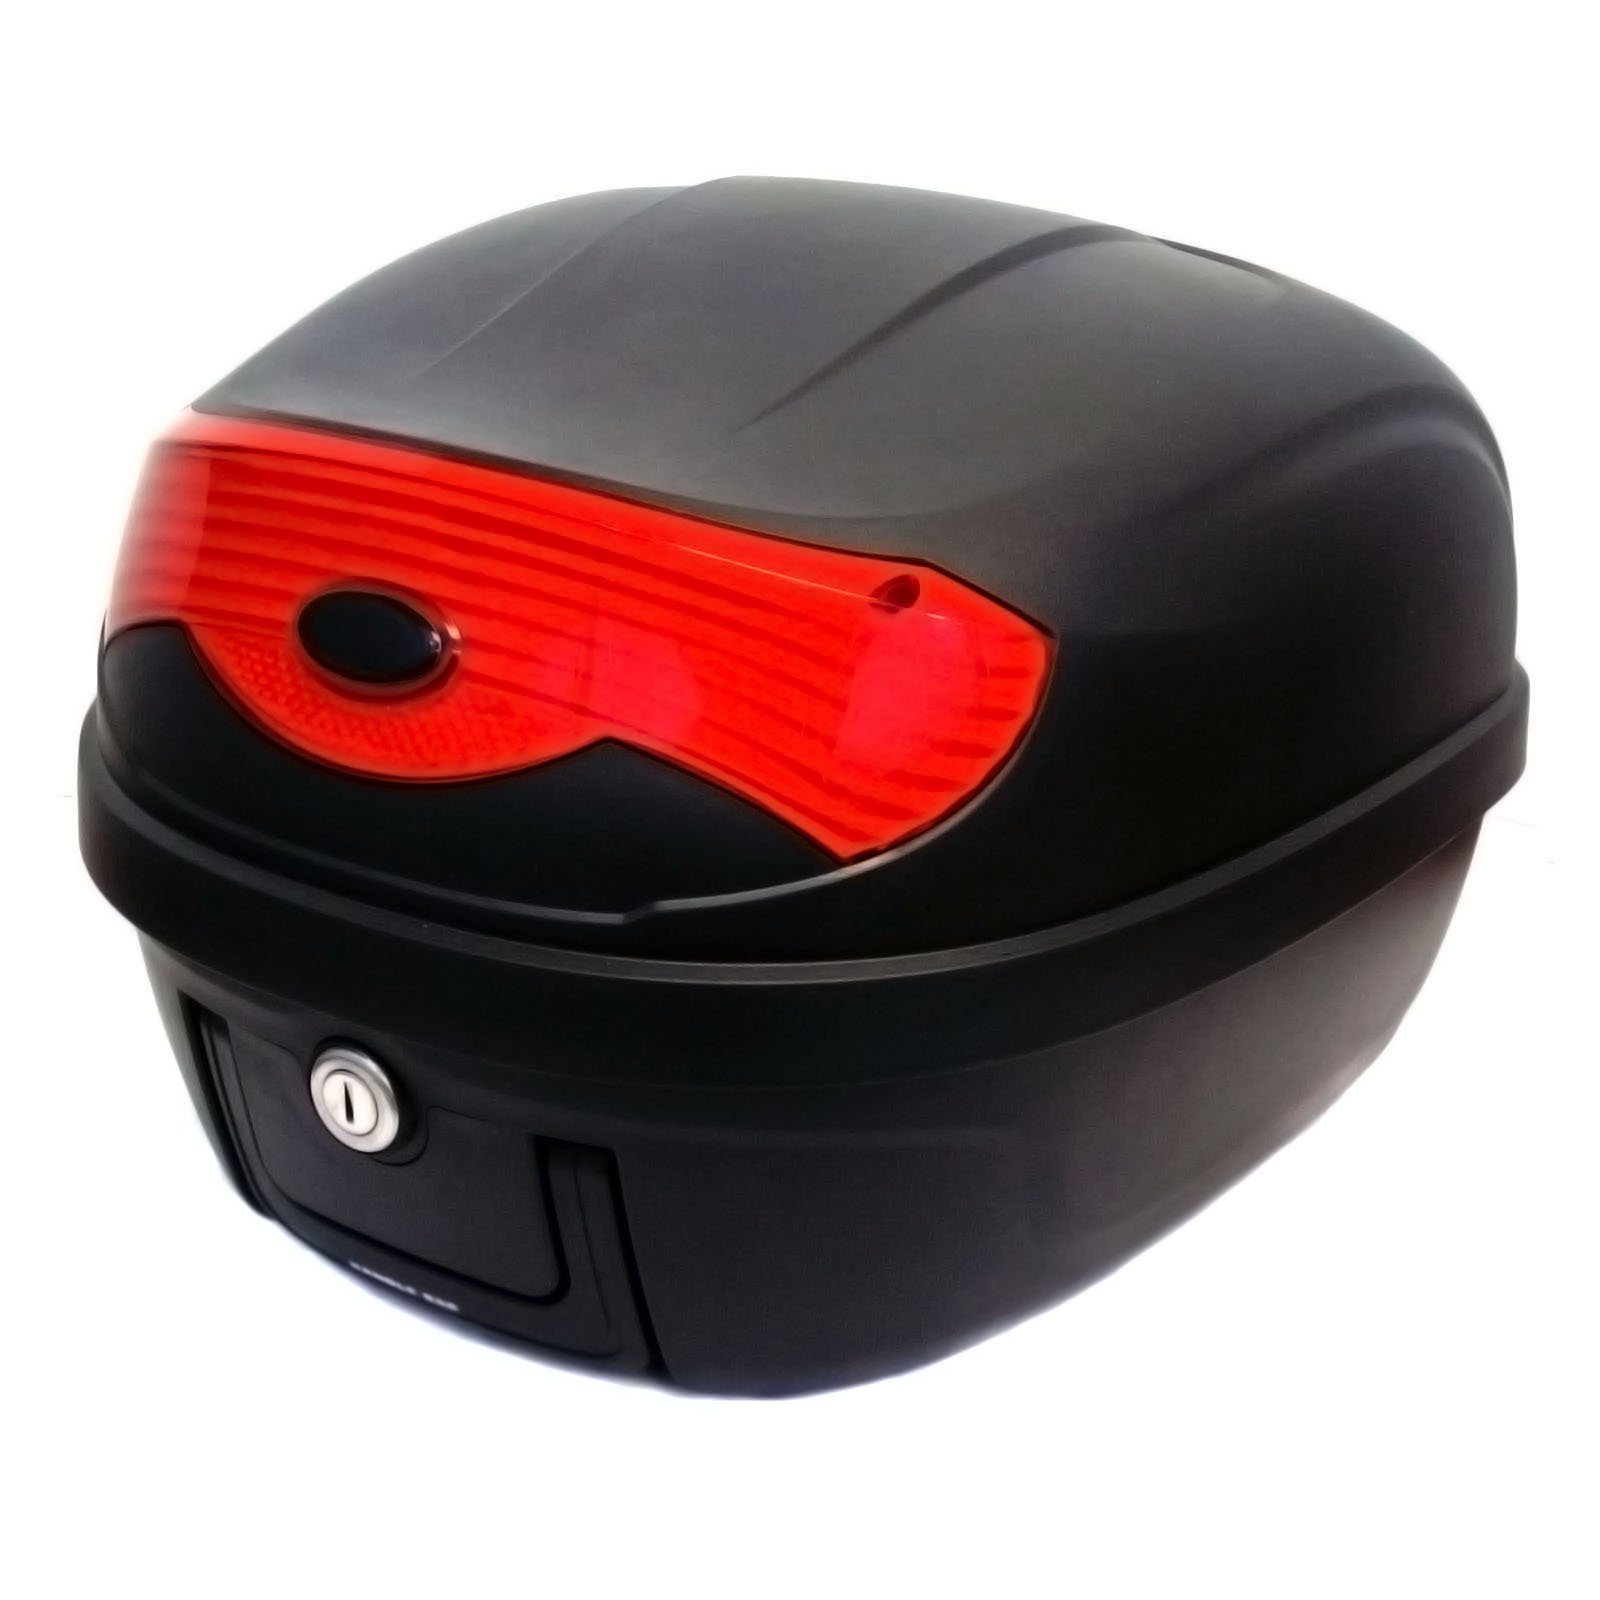 MMG Motorcycle Scooter Top Box Tail Trunk Luggage Box, 15 x 15 x 11.5 inches, Holds 1 Helmet Hard Case (808) by MMG